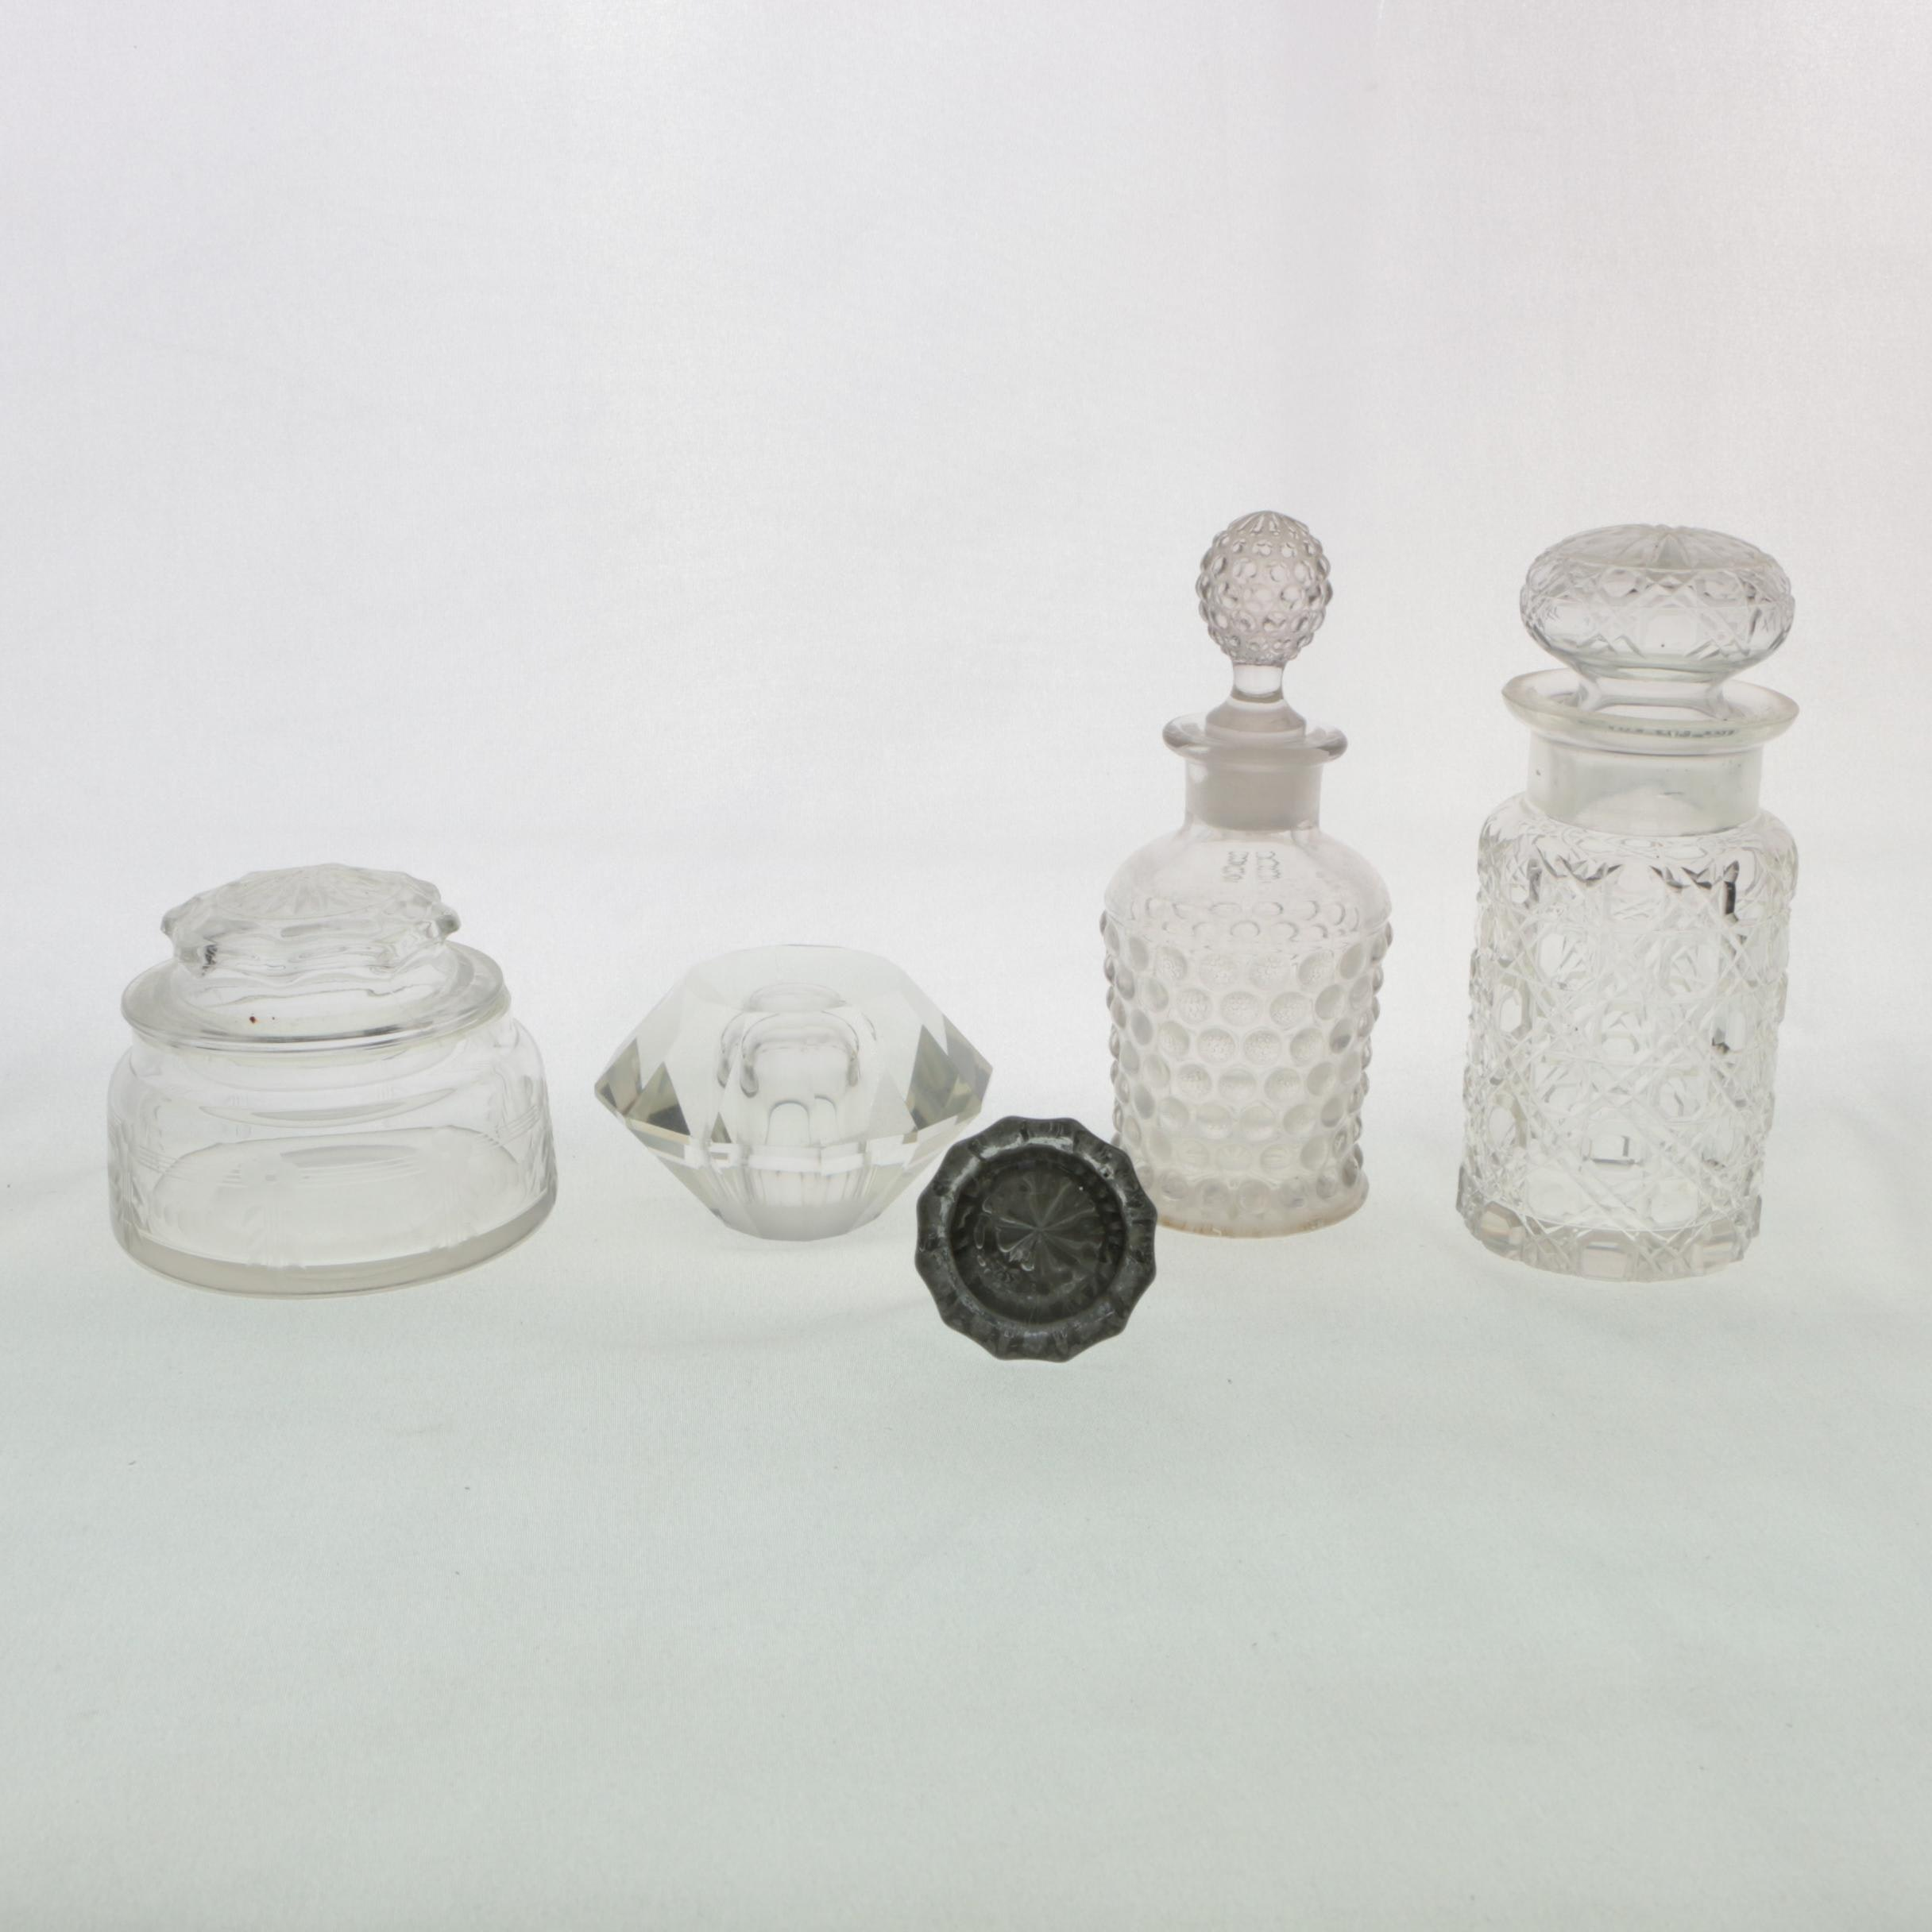 Glass Decanters with Paperweight and Jar